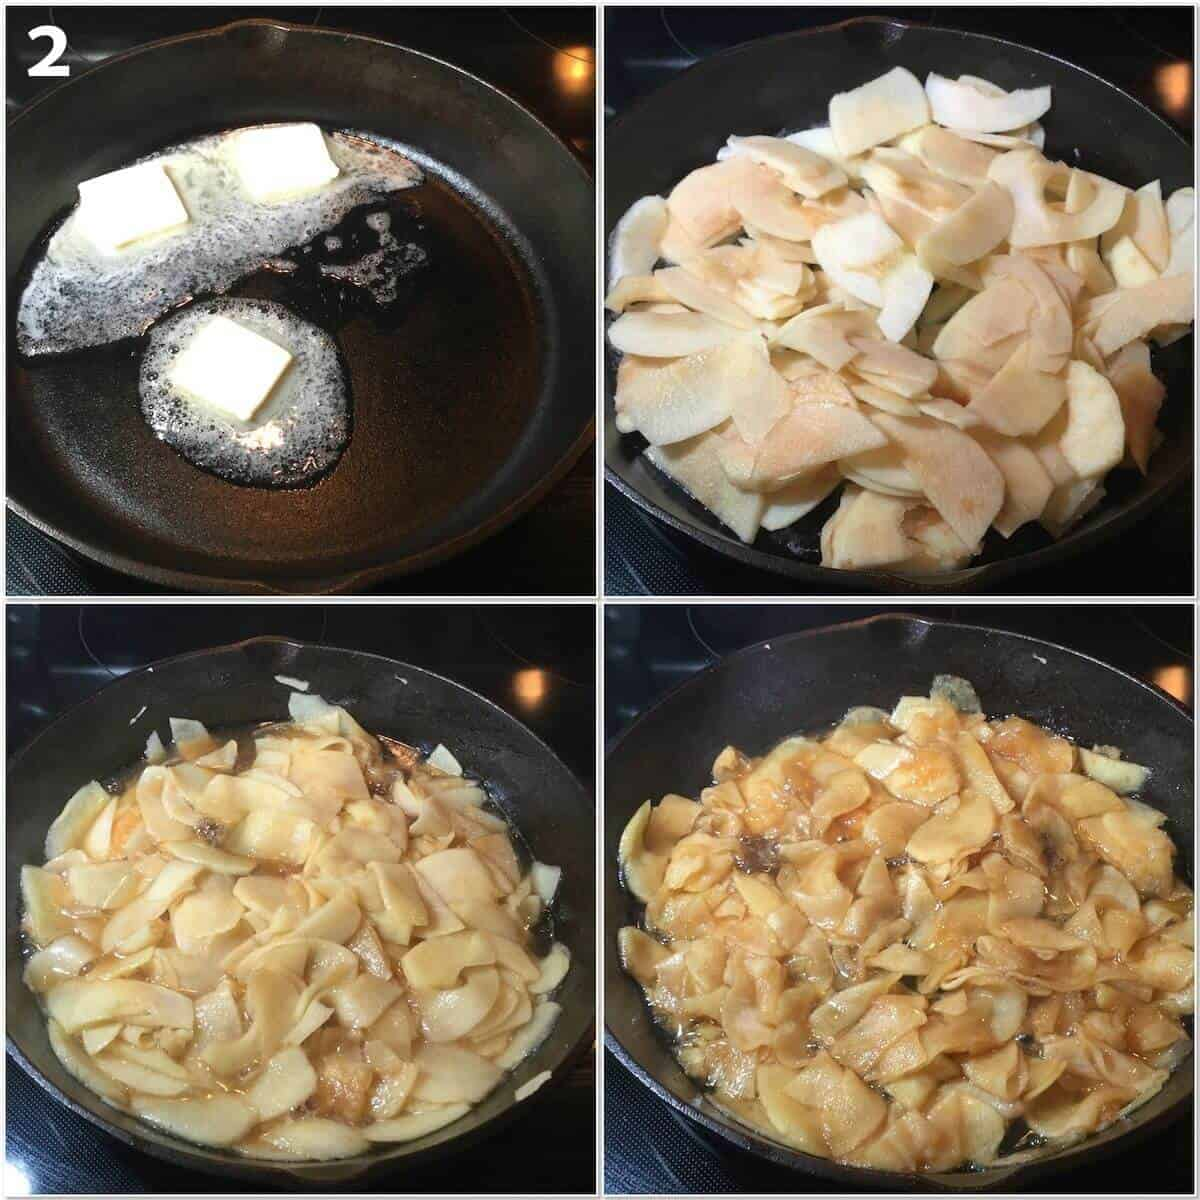 Collage of cooking down the apples in butter, boiled cider, and honey.